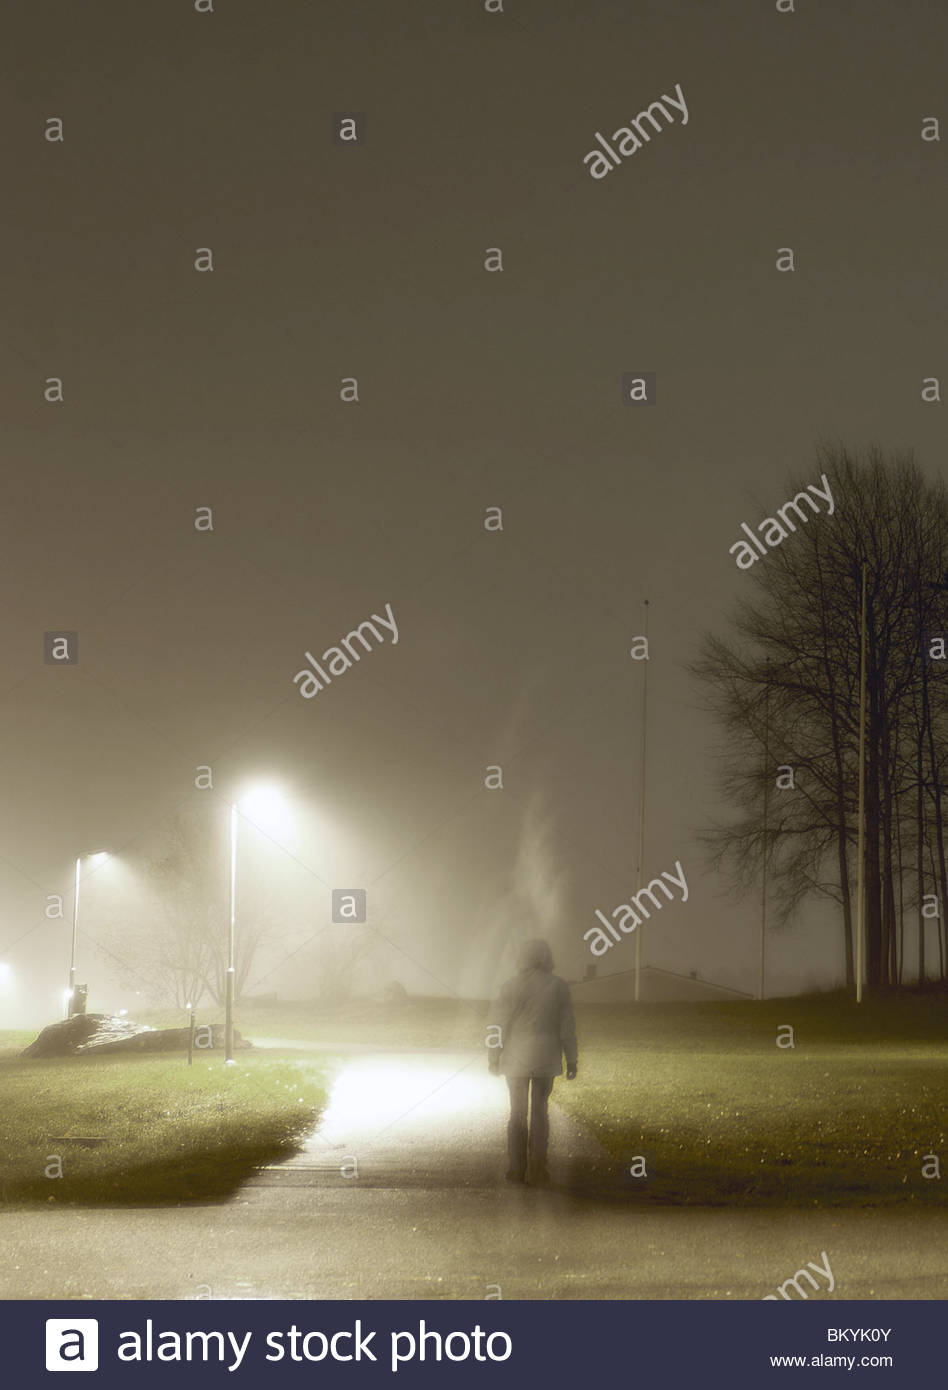 Woman walking in a housing area att night in mist, Sweden, 2008 - Stock Image